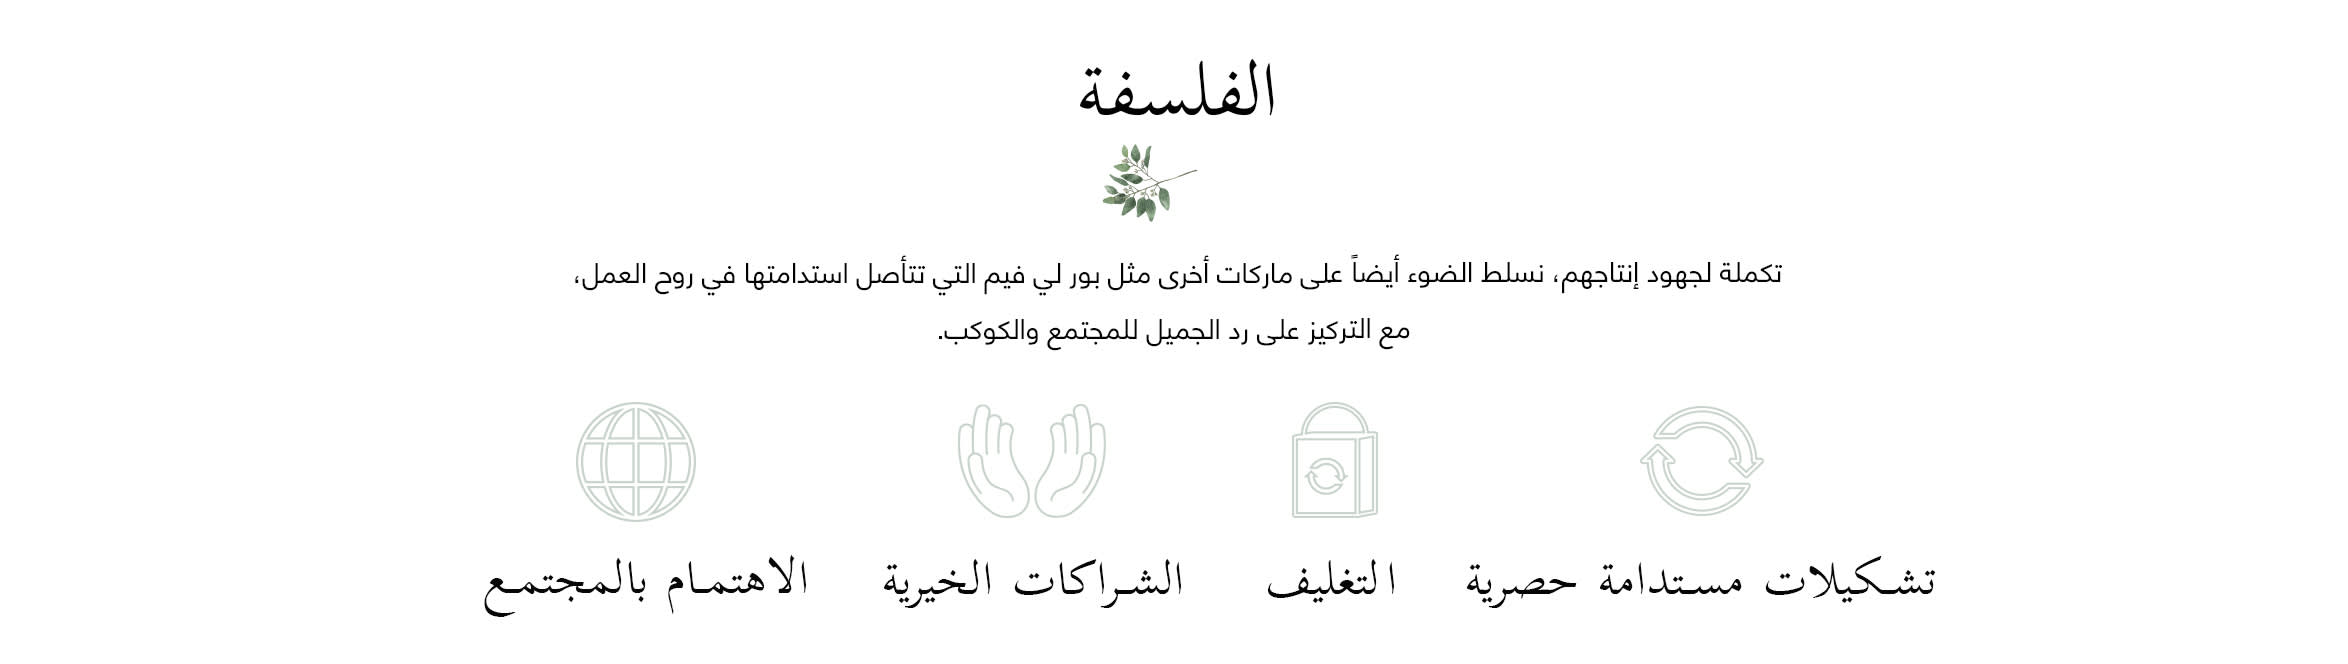 Element 7- Web Arabic@2x.jpg